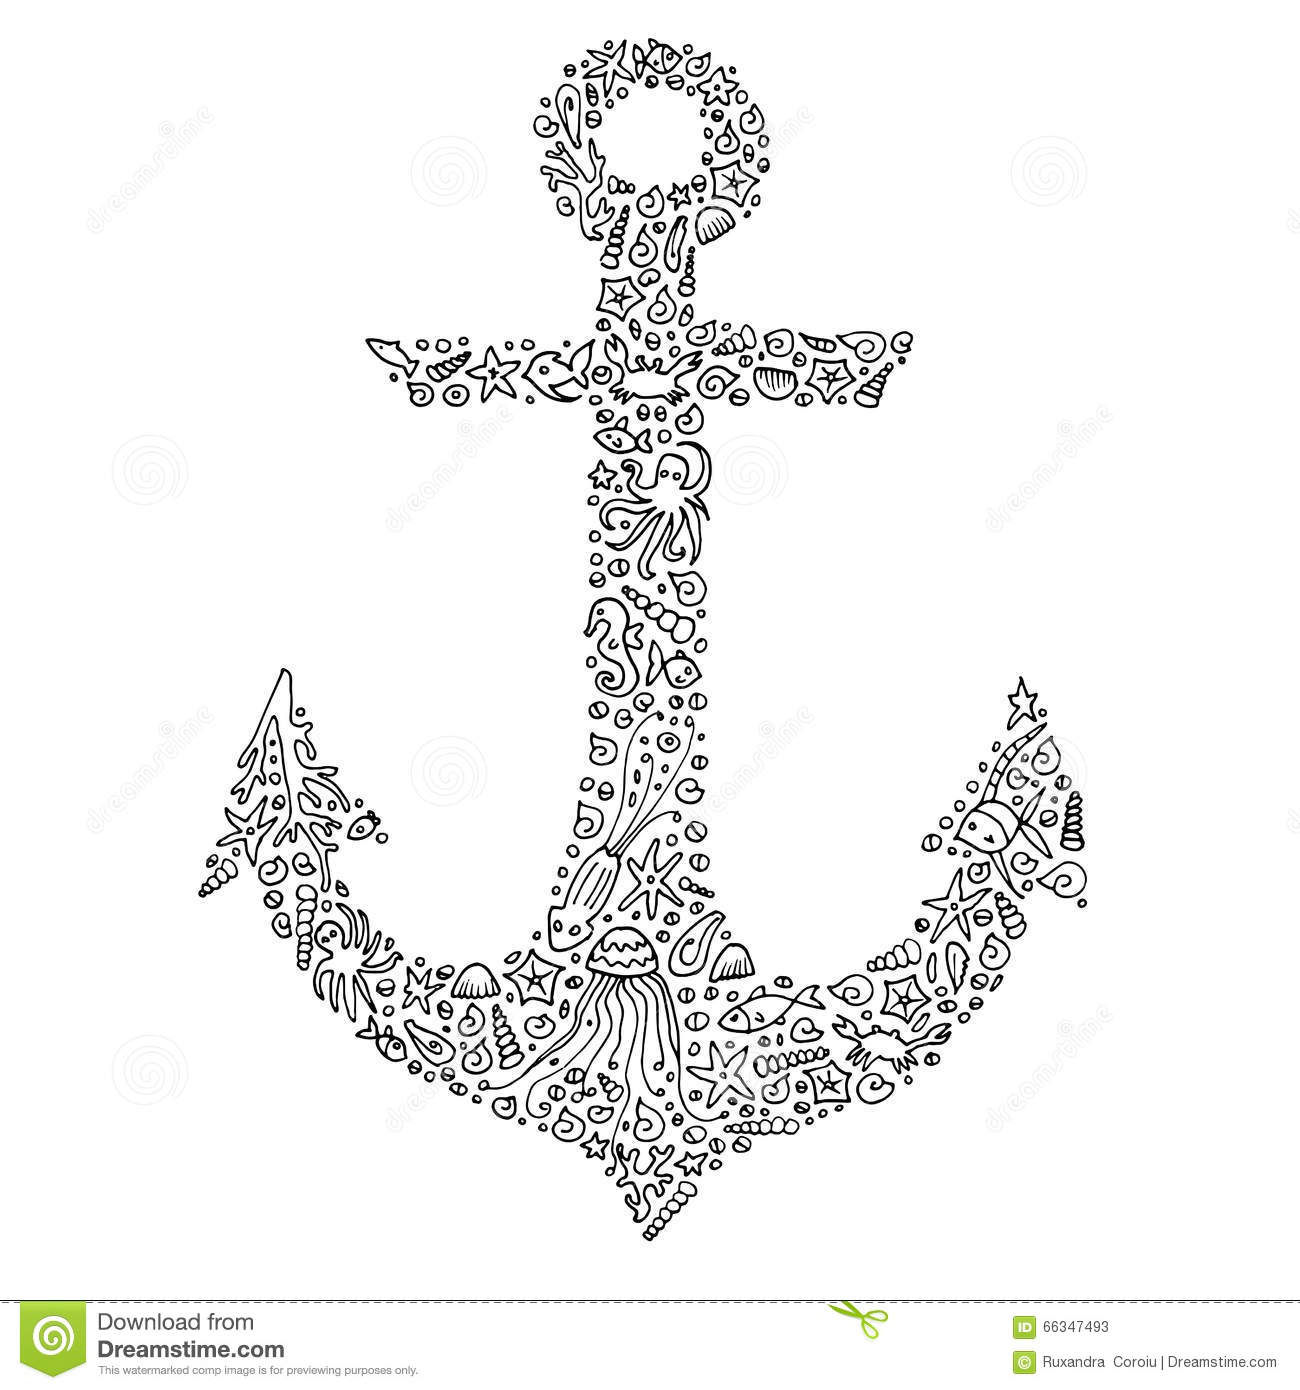 zentangle hand drawn anchor with sea creatures adult coloring page for print vector eps 10 - Anchor Coloring Page